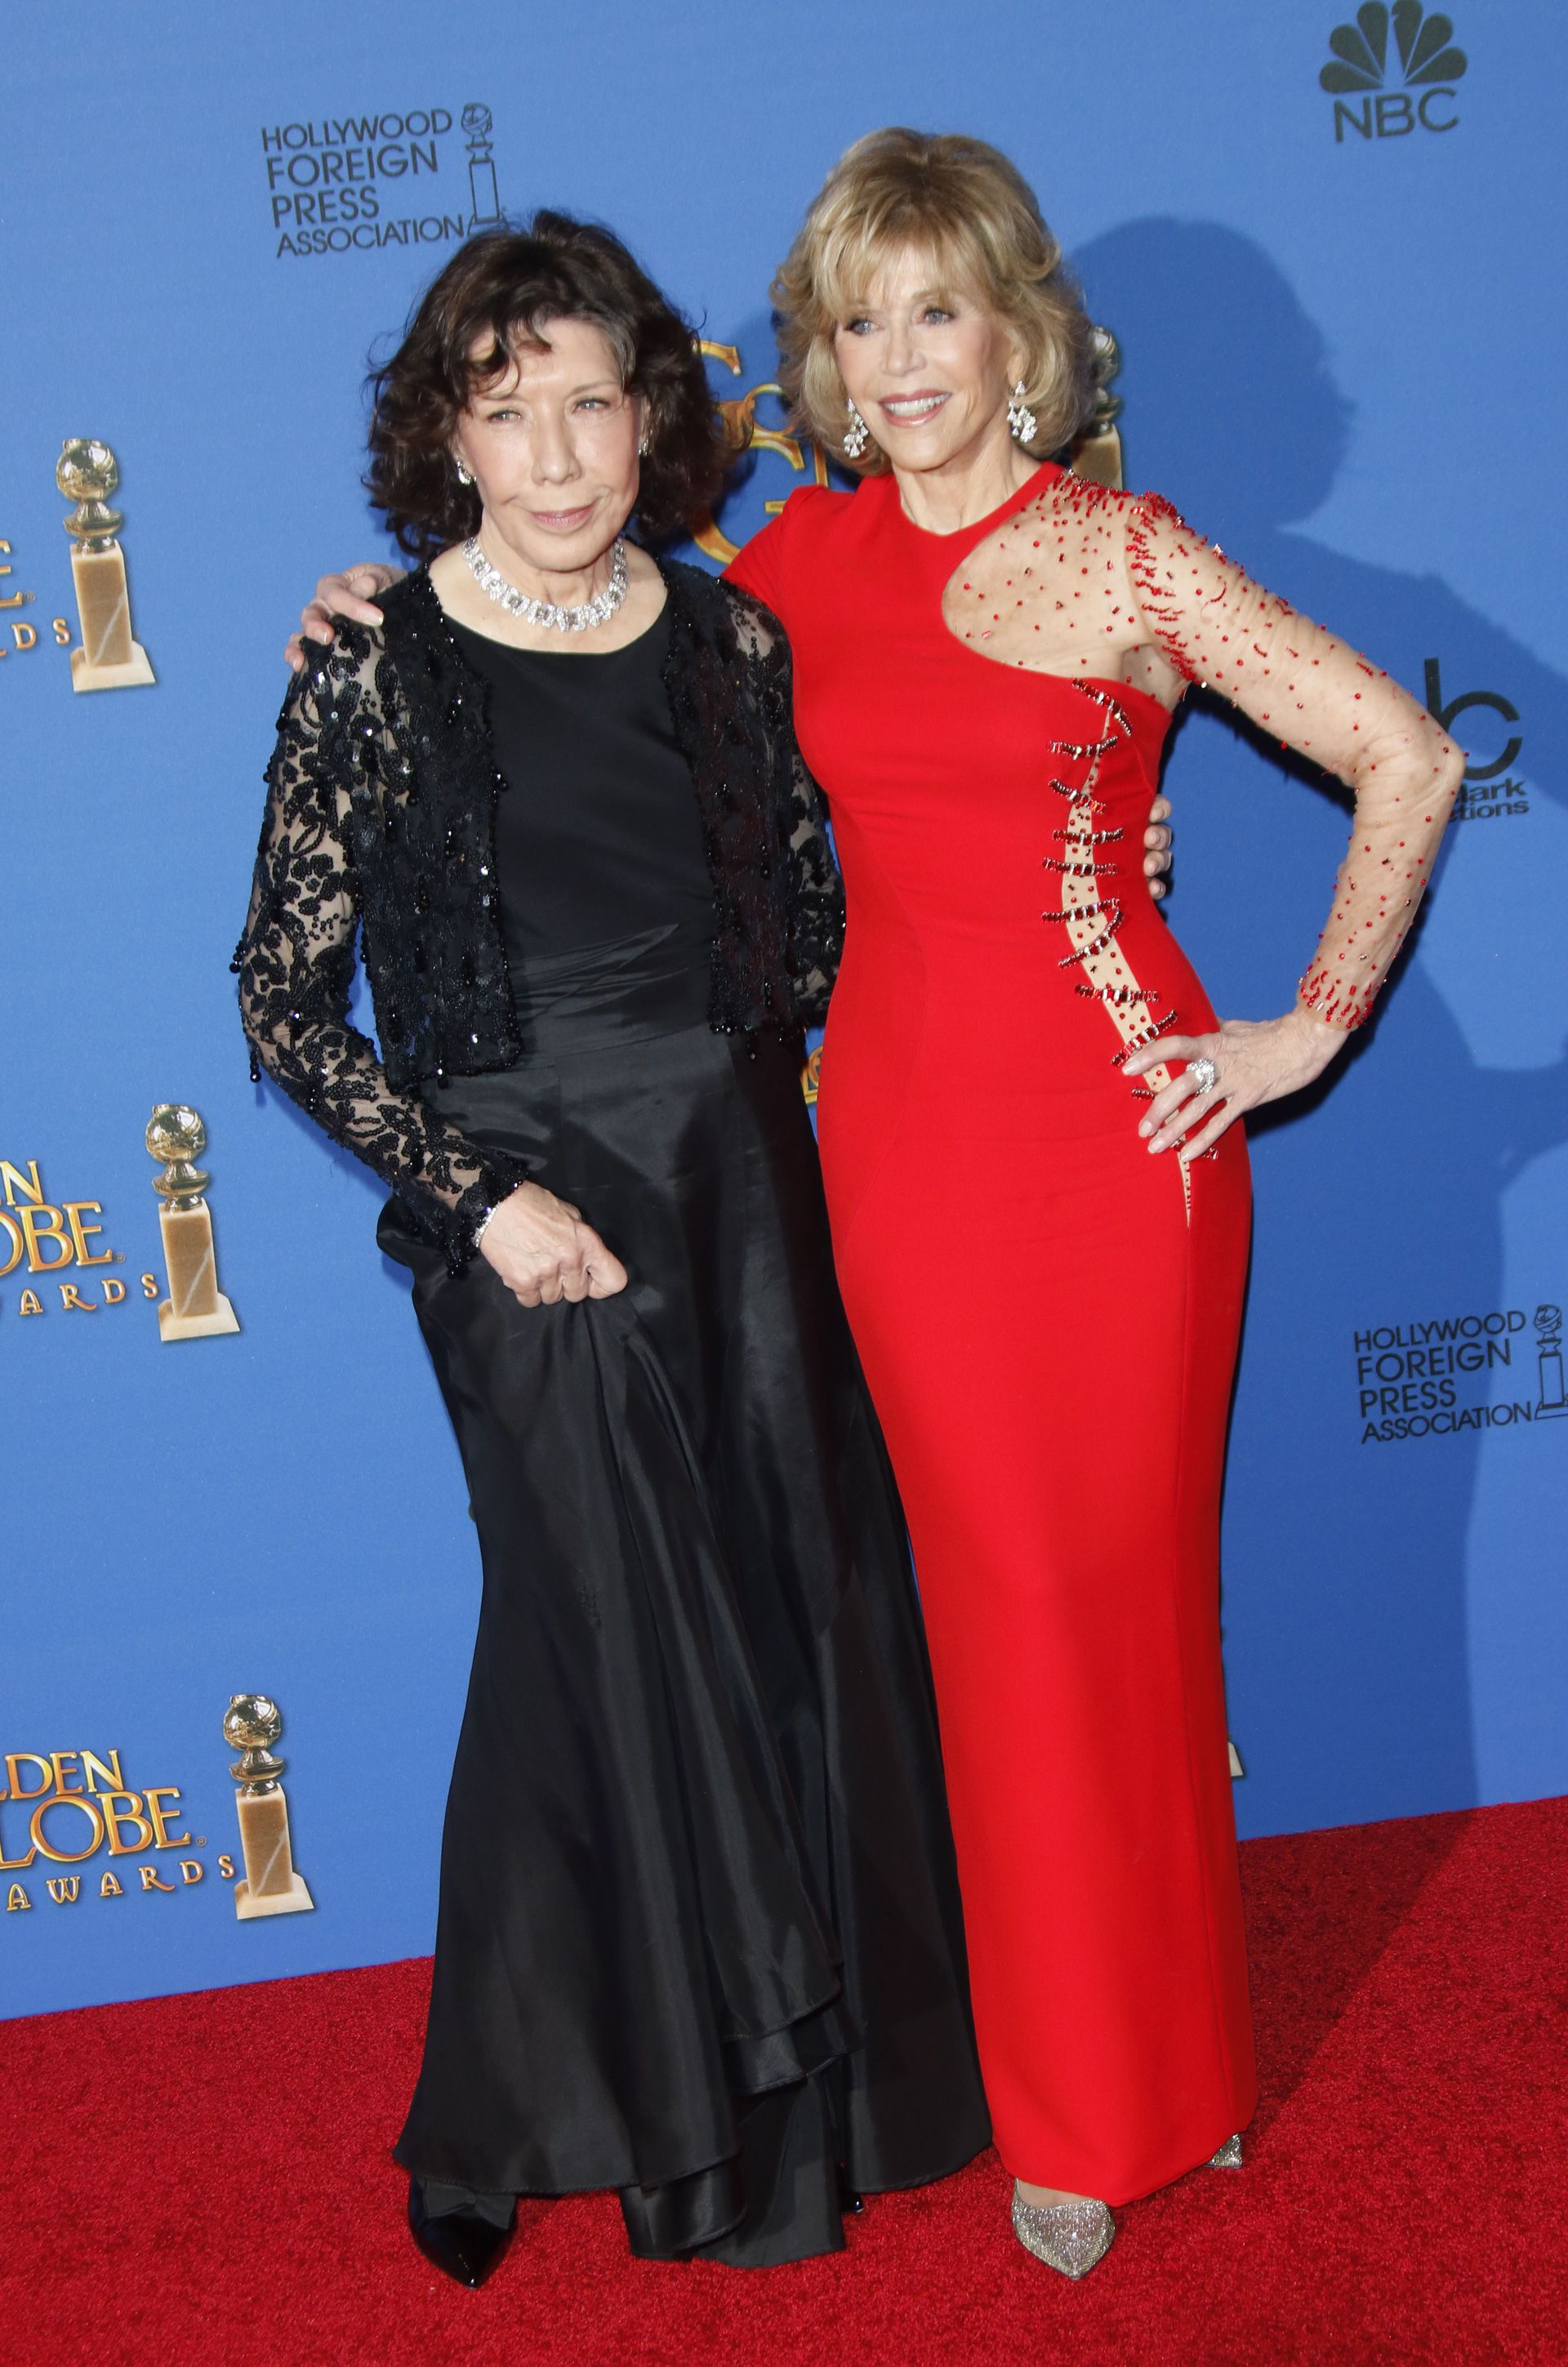 Emmy fashion 2014 best red carpet dresses blogher - Anything Goes At The Globes 12 Dresses We Can T Stop Talking About